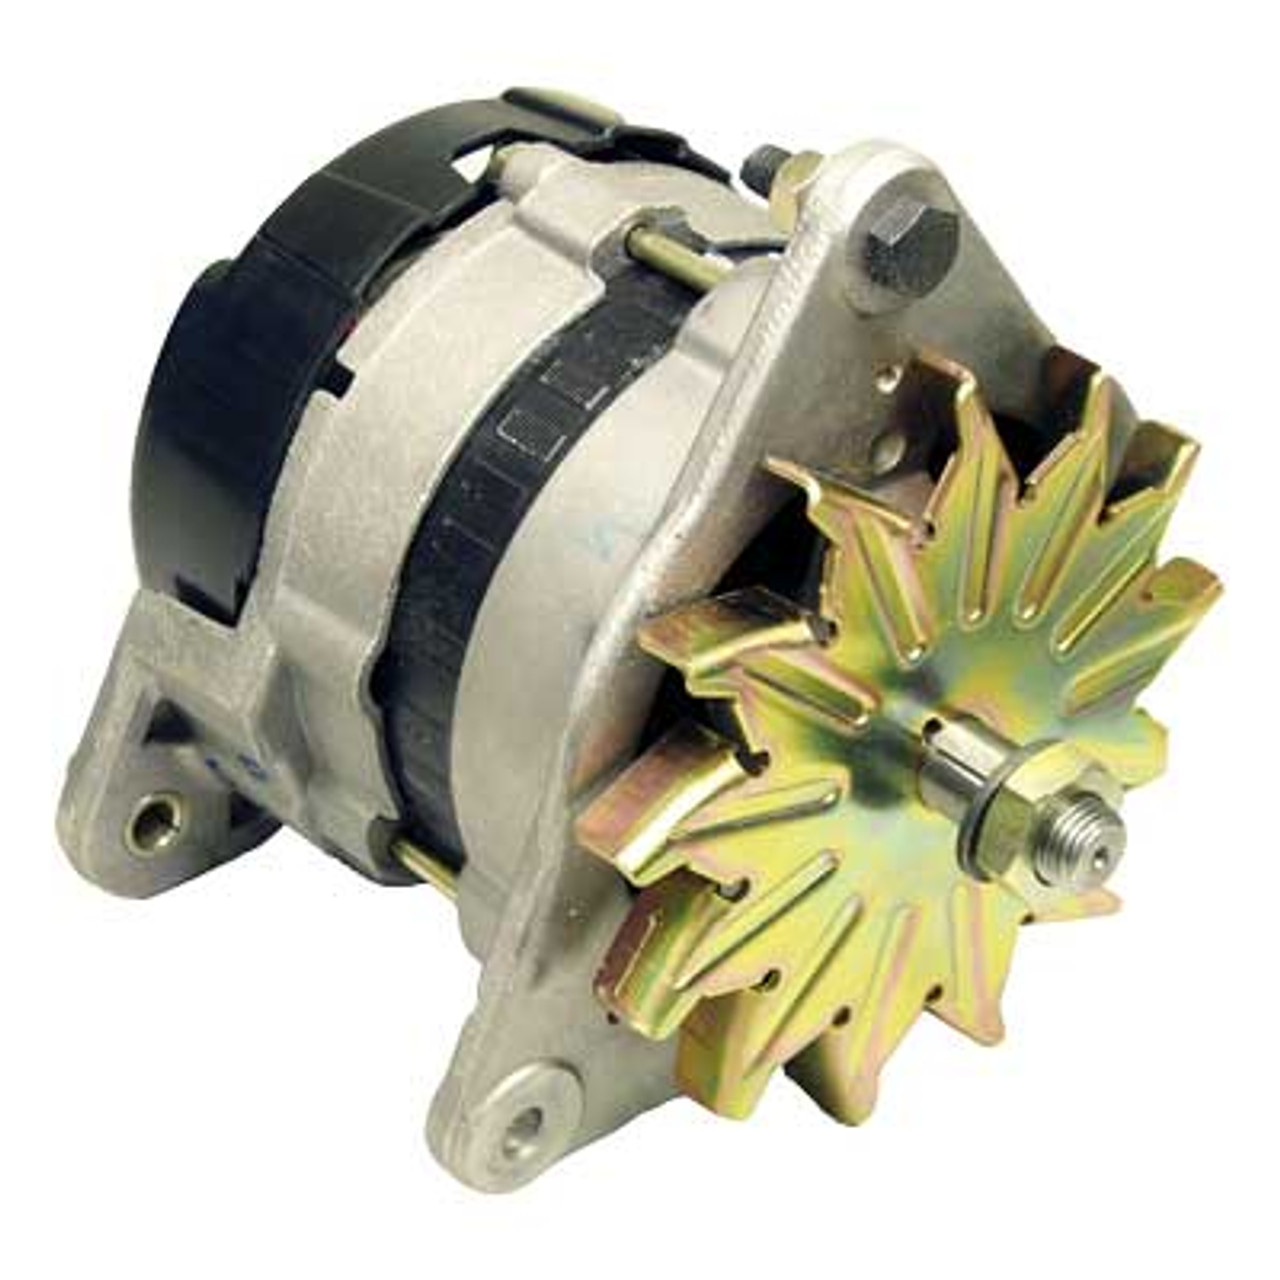 Perkins 3.152 12V 45 Amp Alternator from parts4engines.com